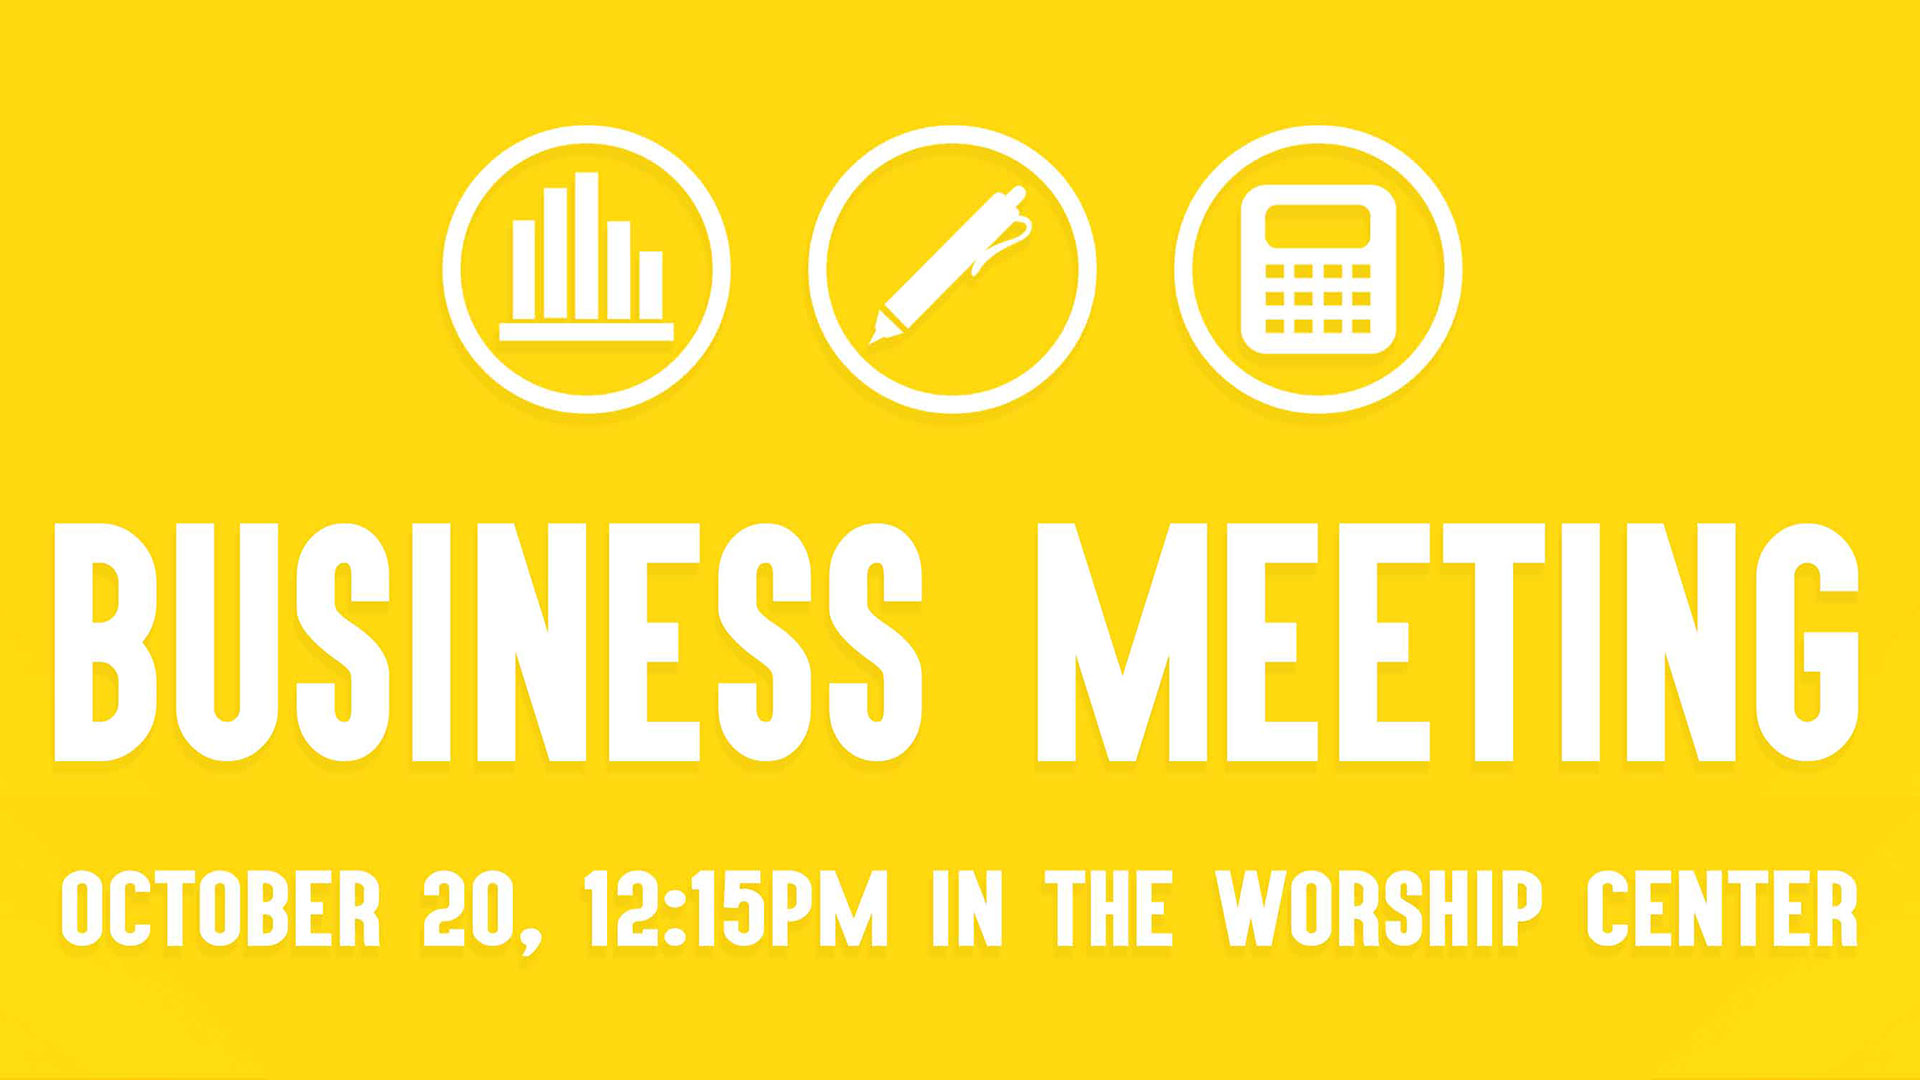 BUSINESS-MEETING-FB-EVENT image